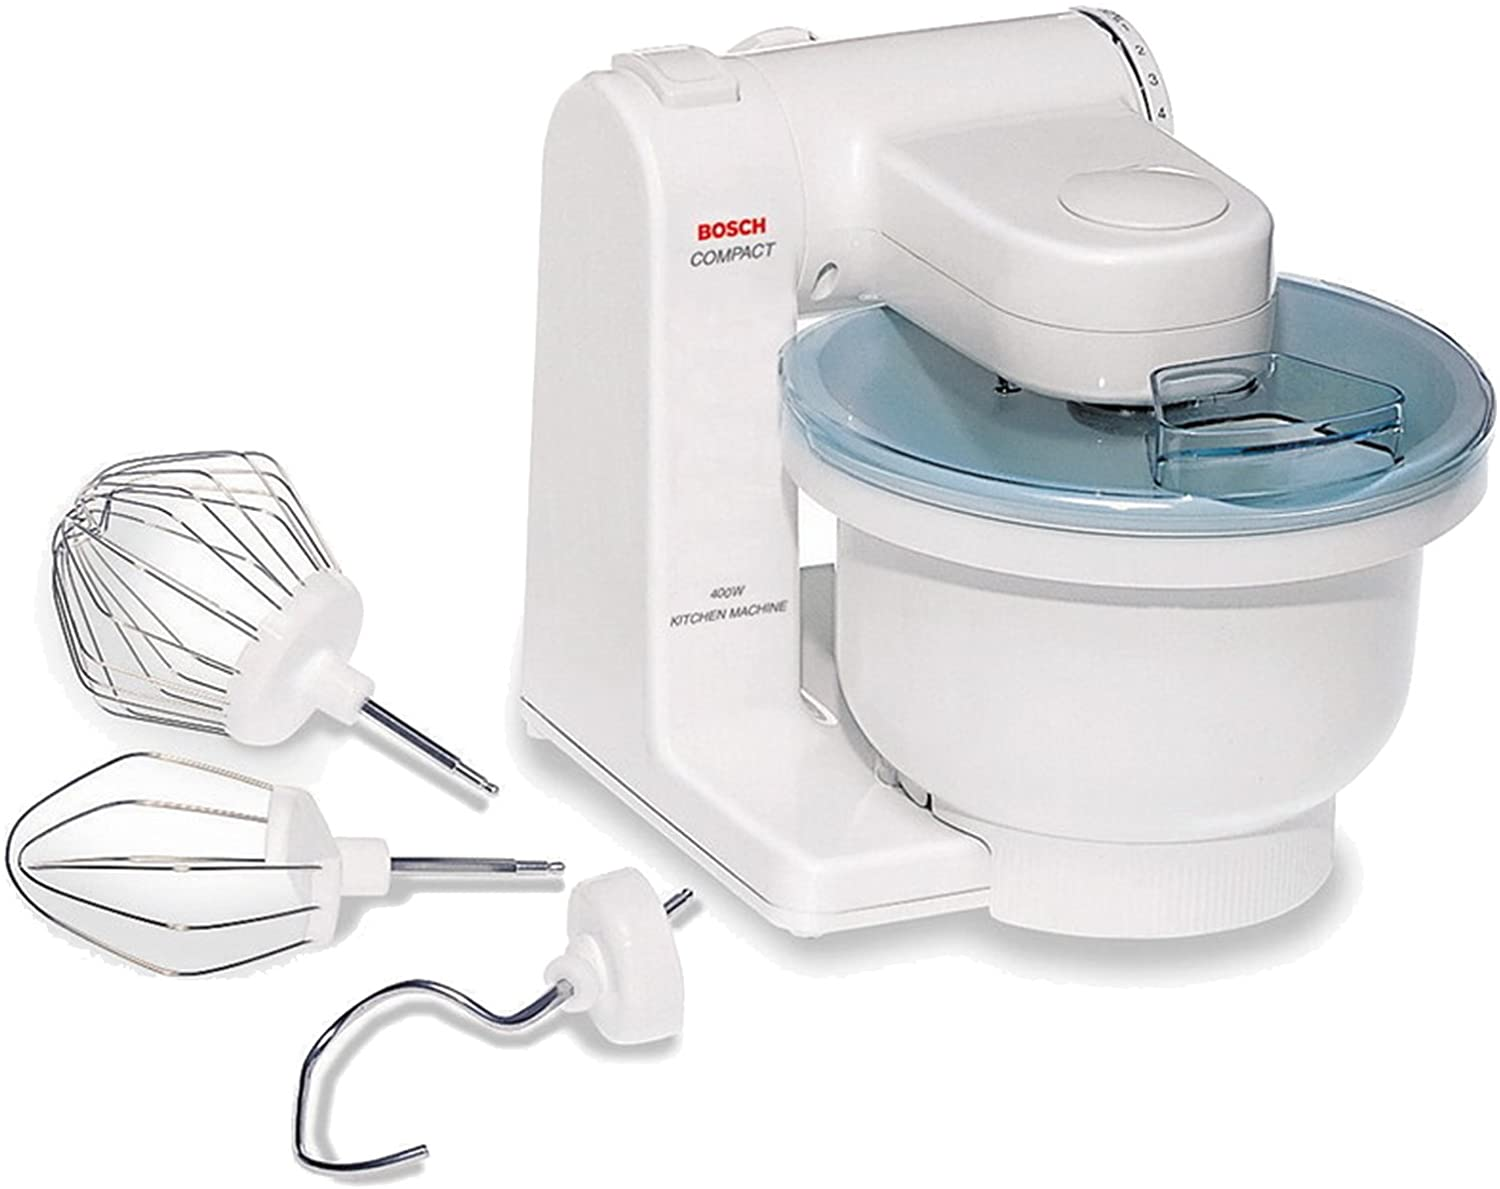 Bosch MUM4405 Compact Tilt-Head Stand Mixer with Pouring Shield, 400 watt, 4 Quart